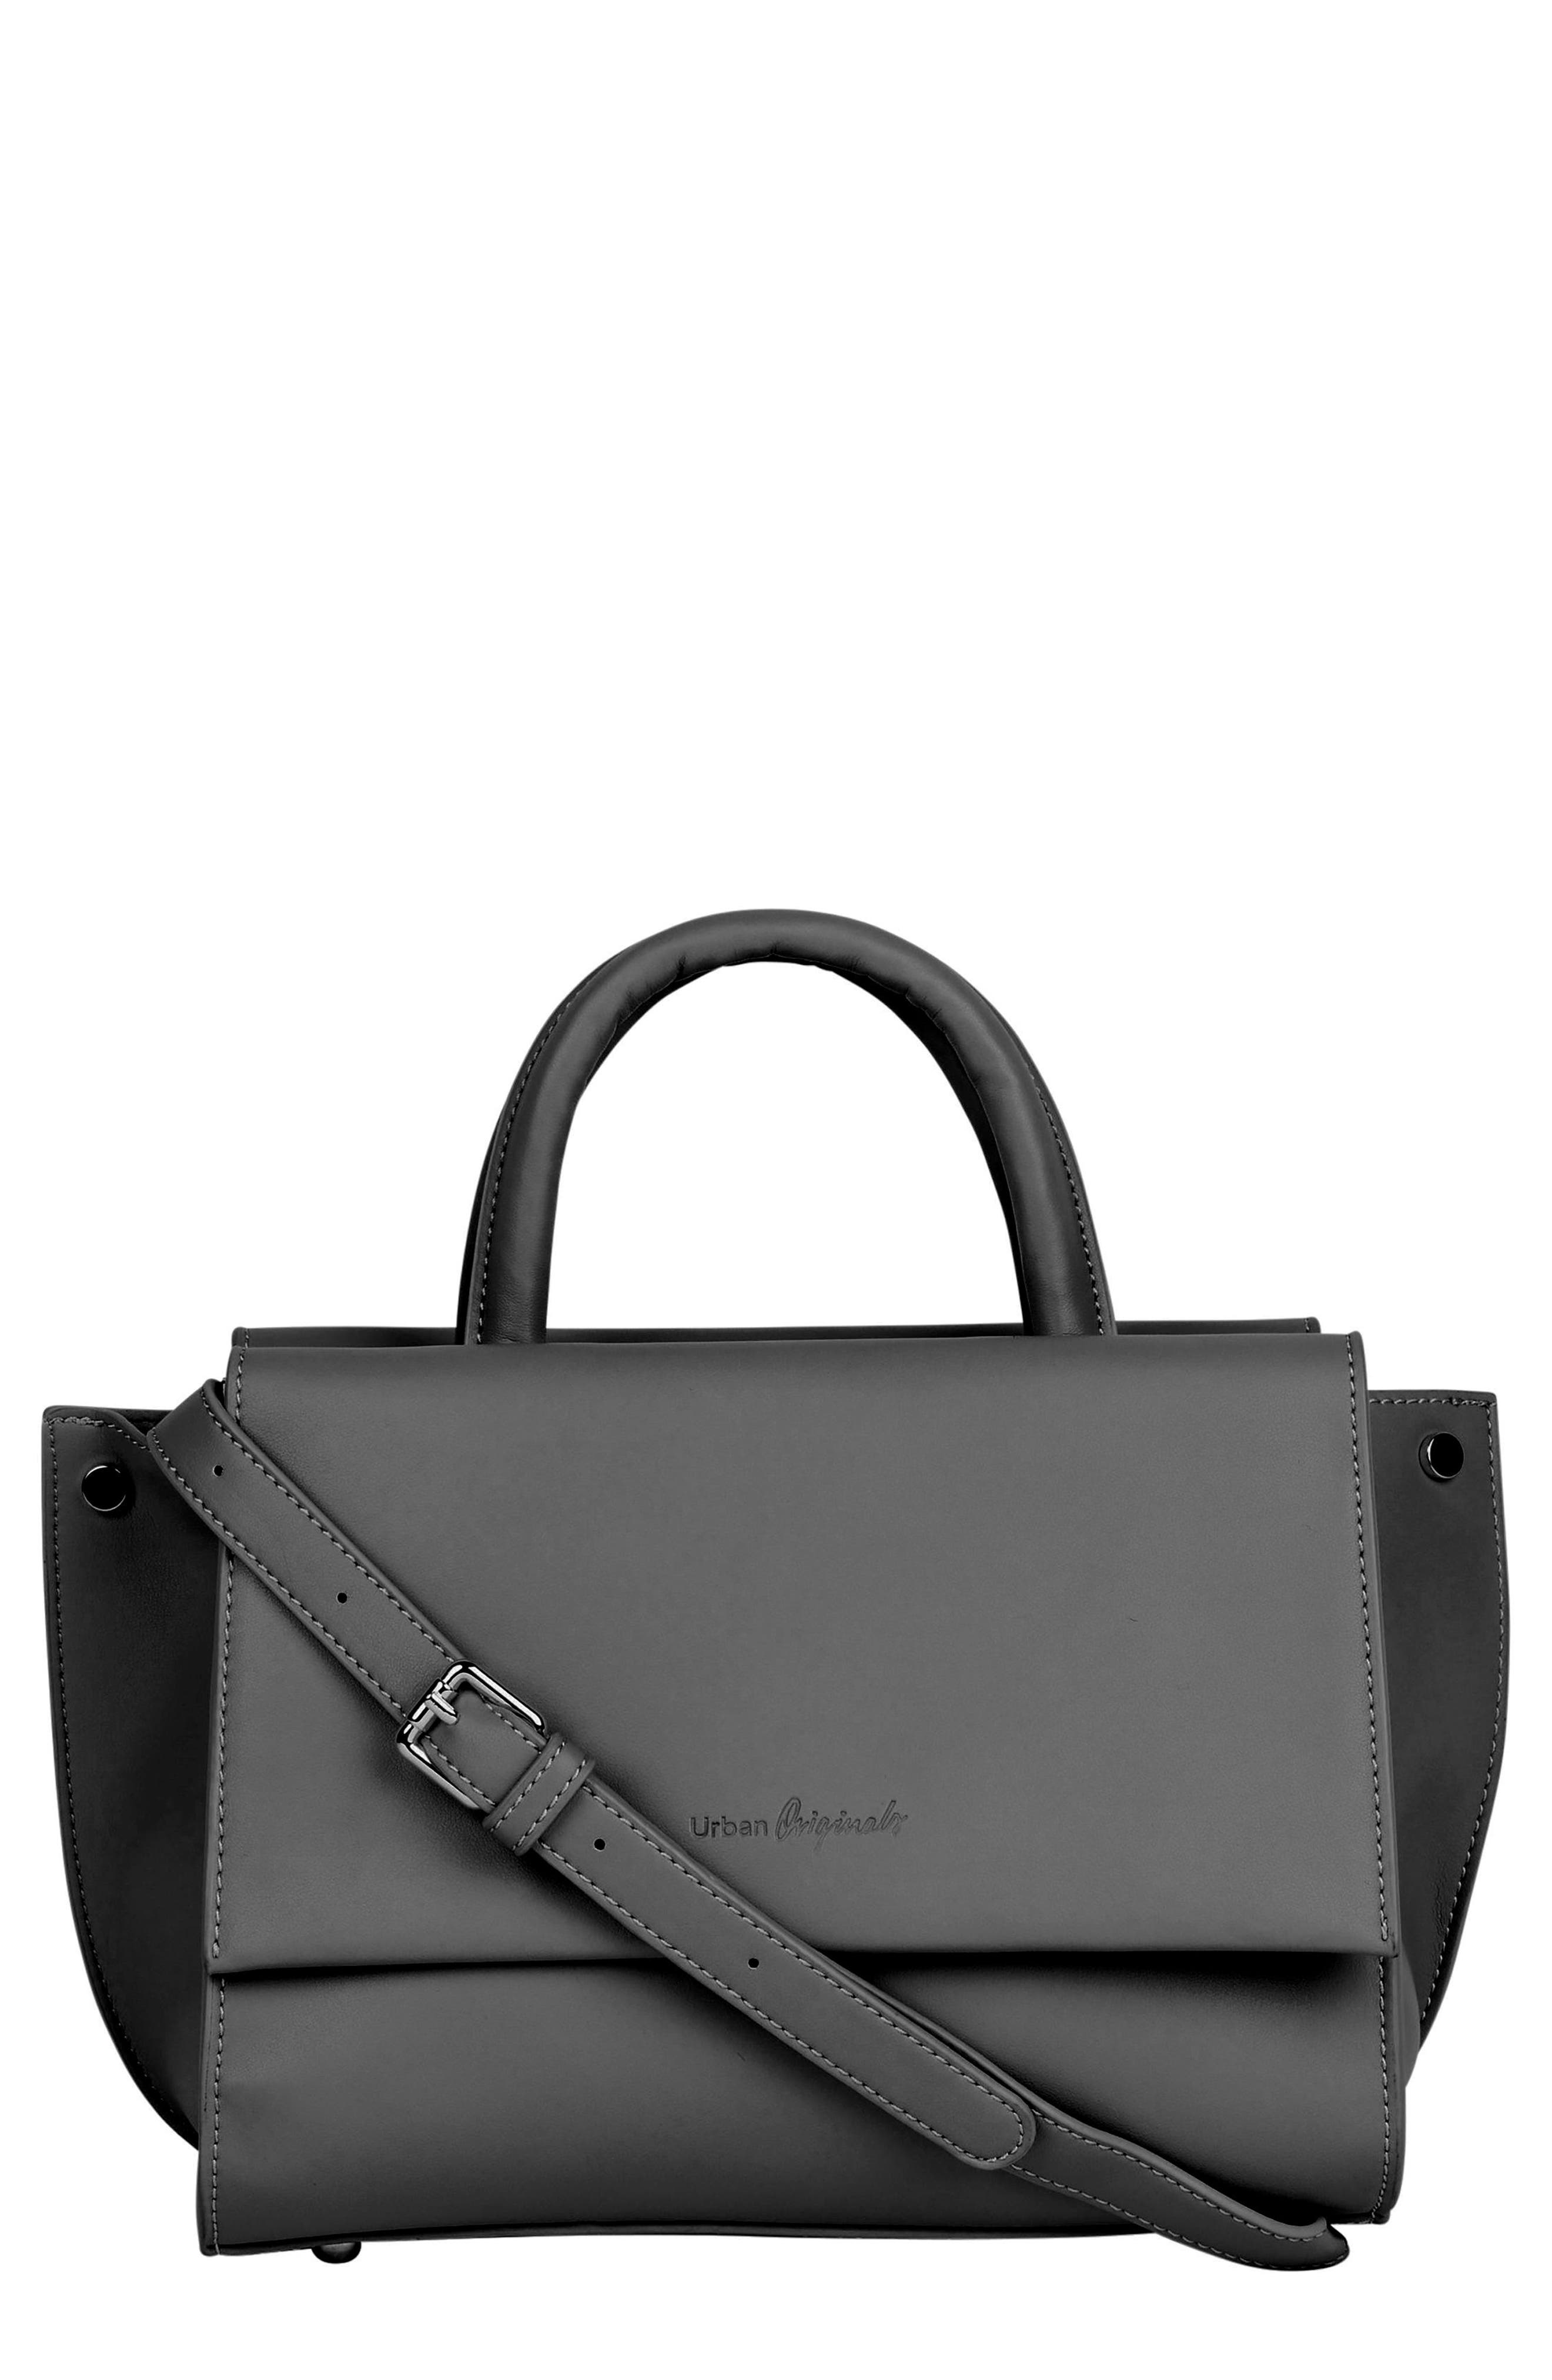 Ethereal Vegan Leather Tote,                             Main thumbnail 1, color,                             BLACK